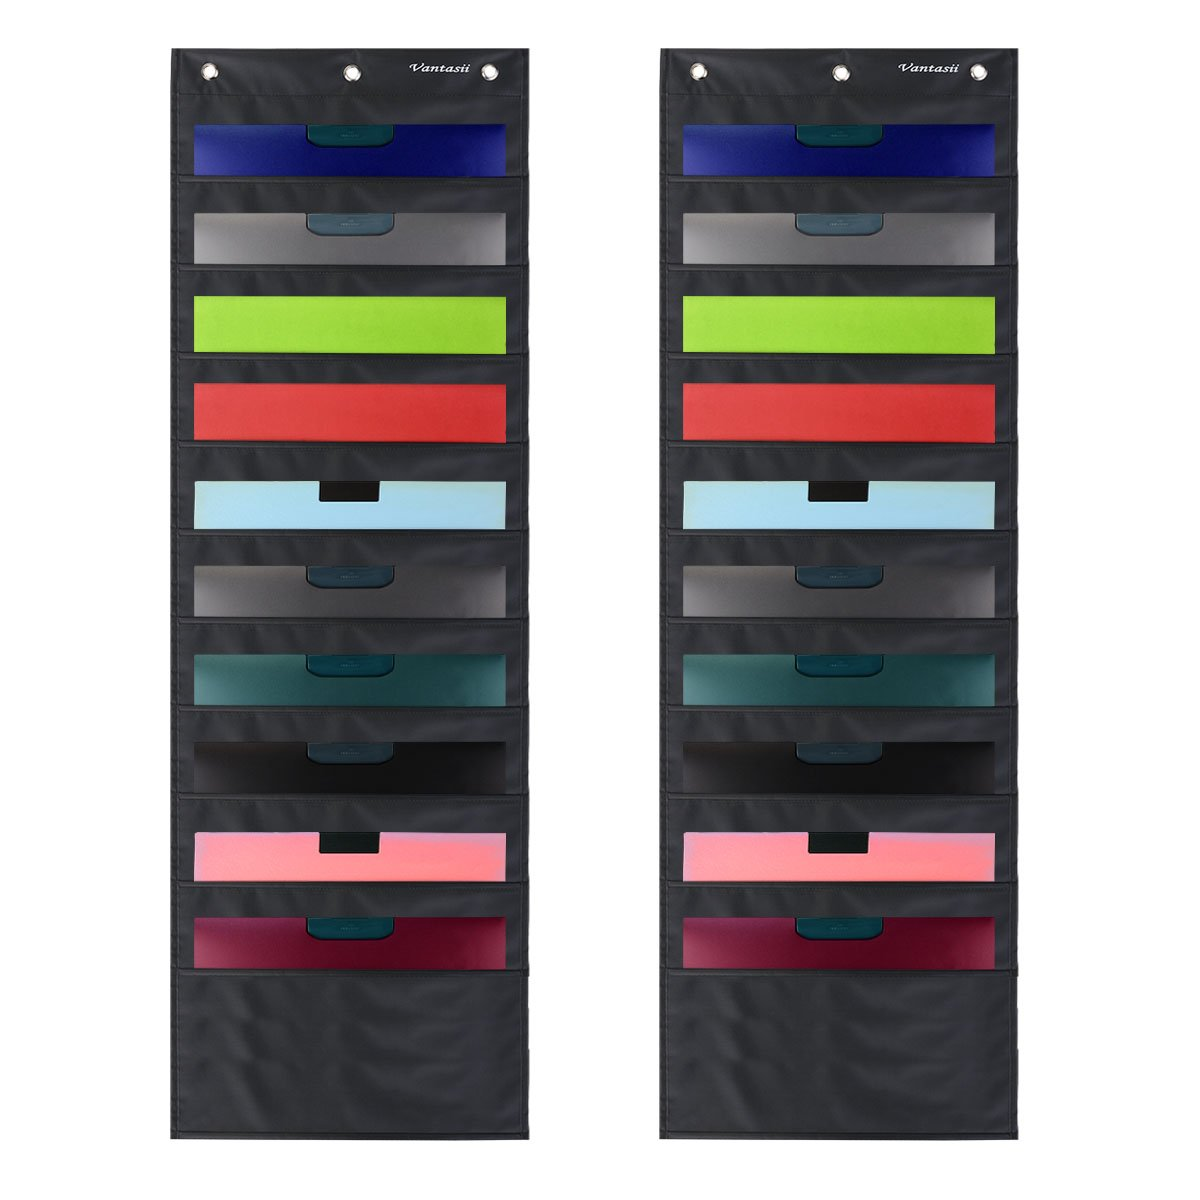 2 Pack Storage Pocket Chart, Wall hanging File Organizer Folder with 10 large Pockets for Office, Home, School, Studio, etc. 14 X 47 inch, BLACK, Mountings included.